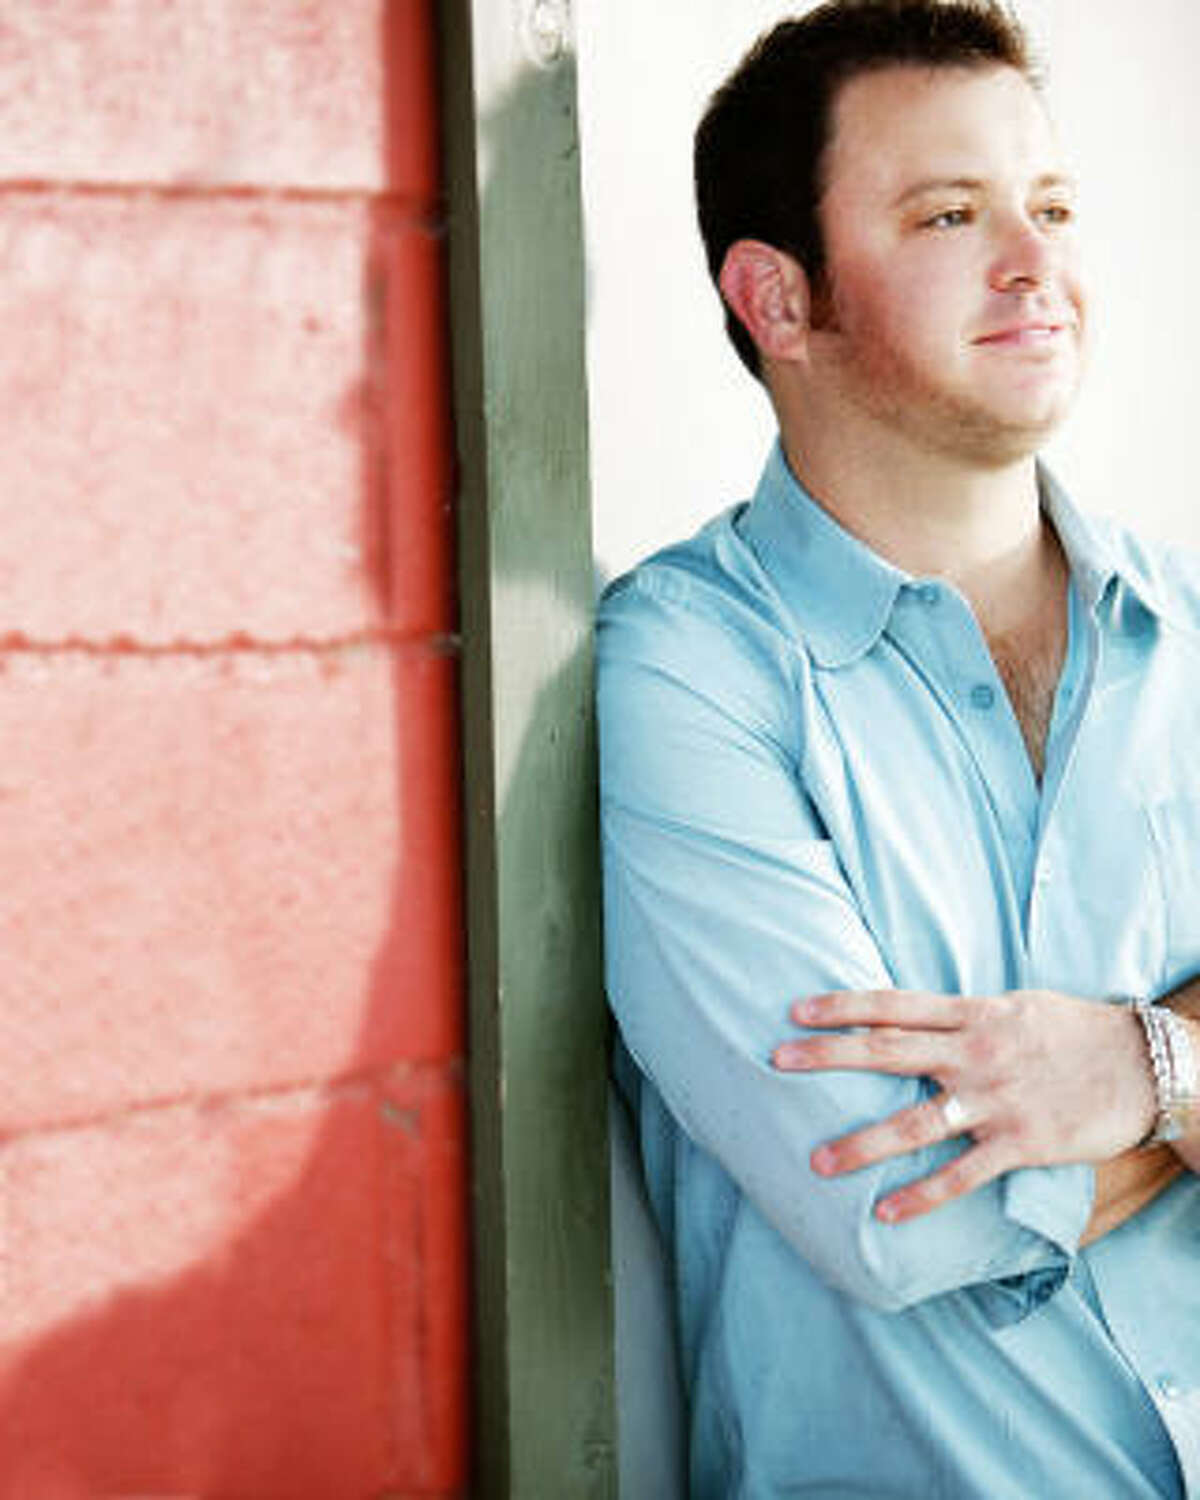 """Texas singer Wade Bowen says his current album, If We Ever Make It Home, """"is about being happy with your life, even within all that's going on inside and around us. It reflects my hope that there's a better future for us all and finding a better place, a peaceful place, while the world seems as if it's going in the other direction."""""""